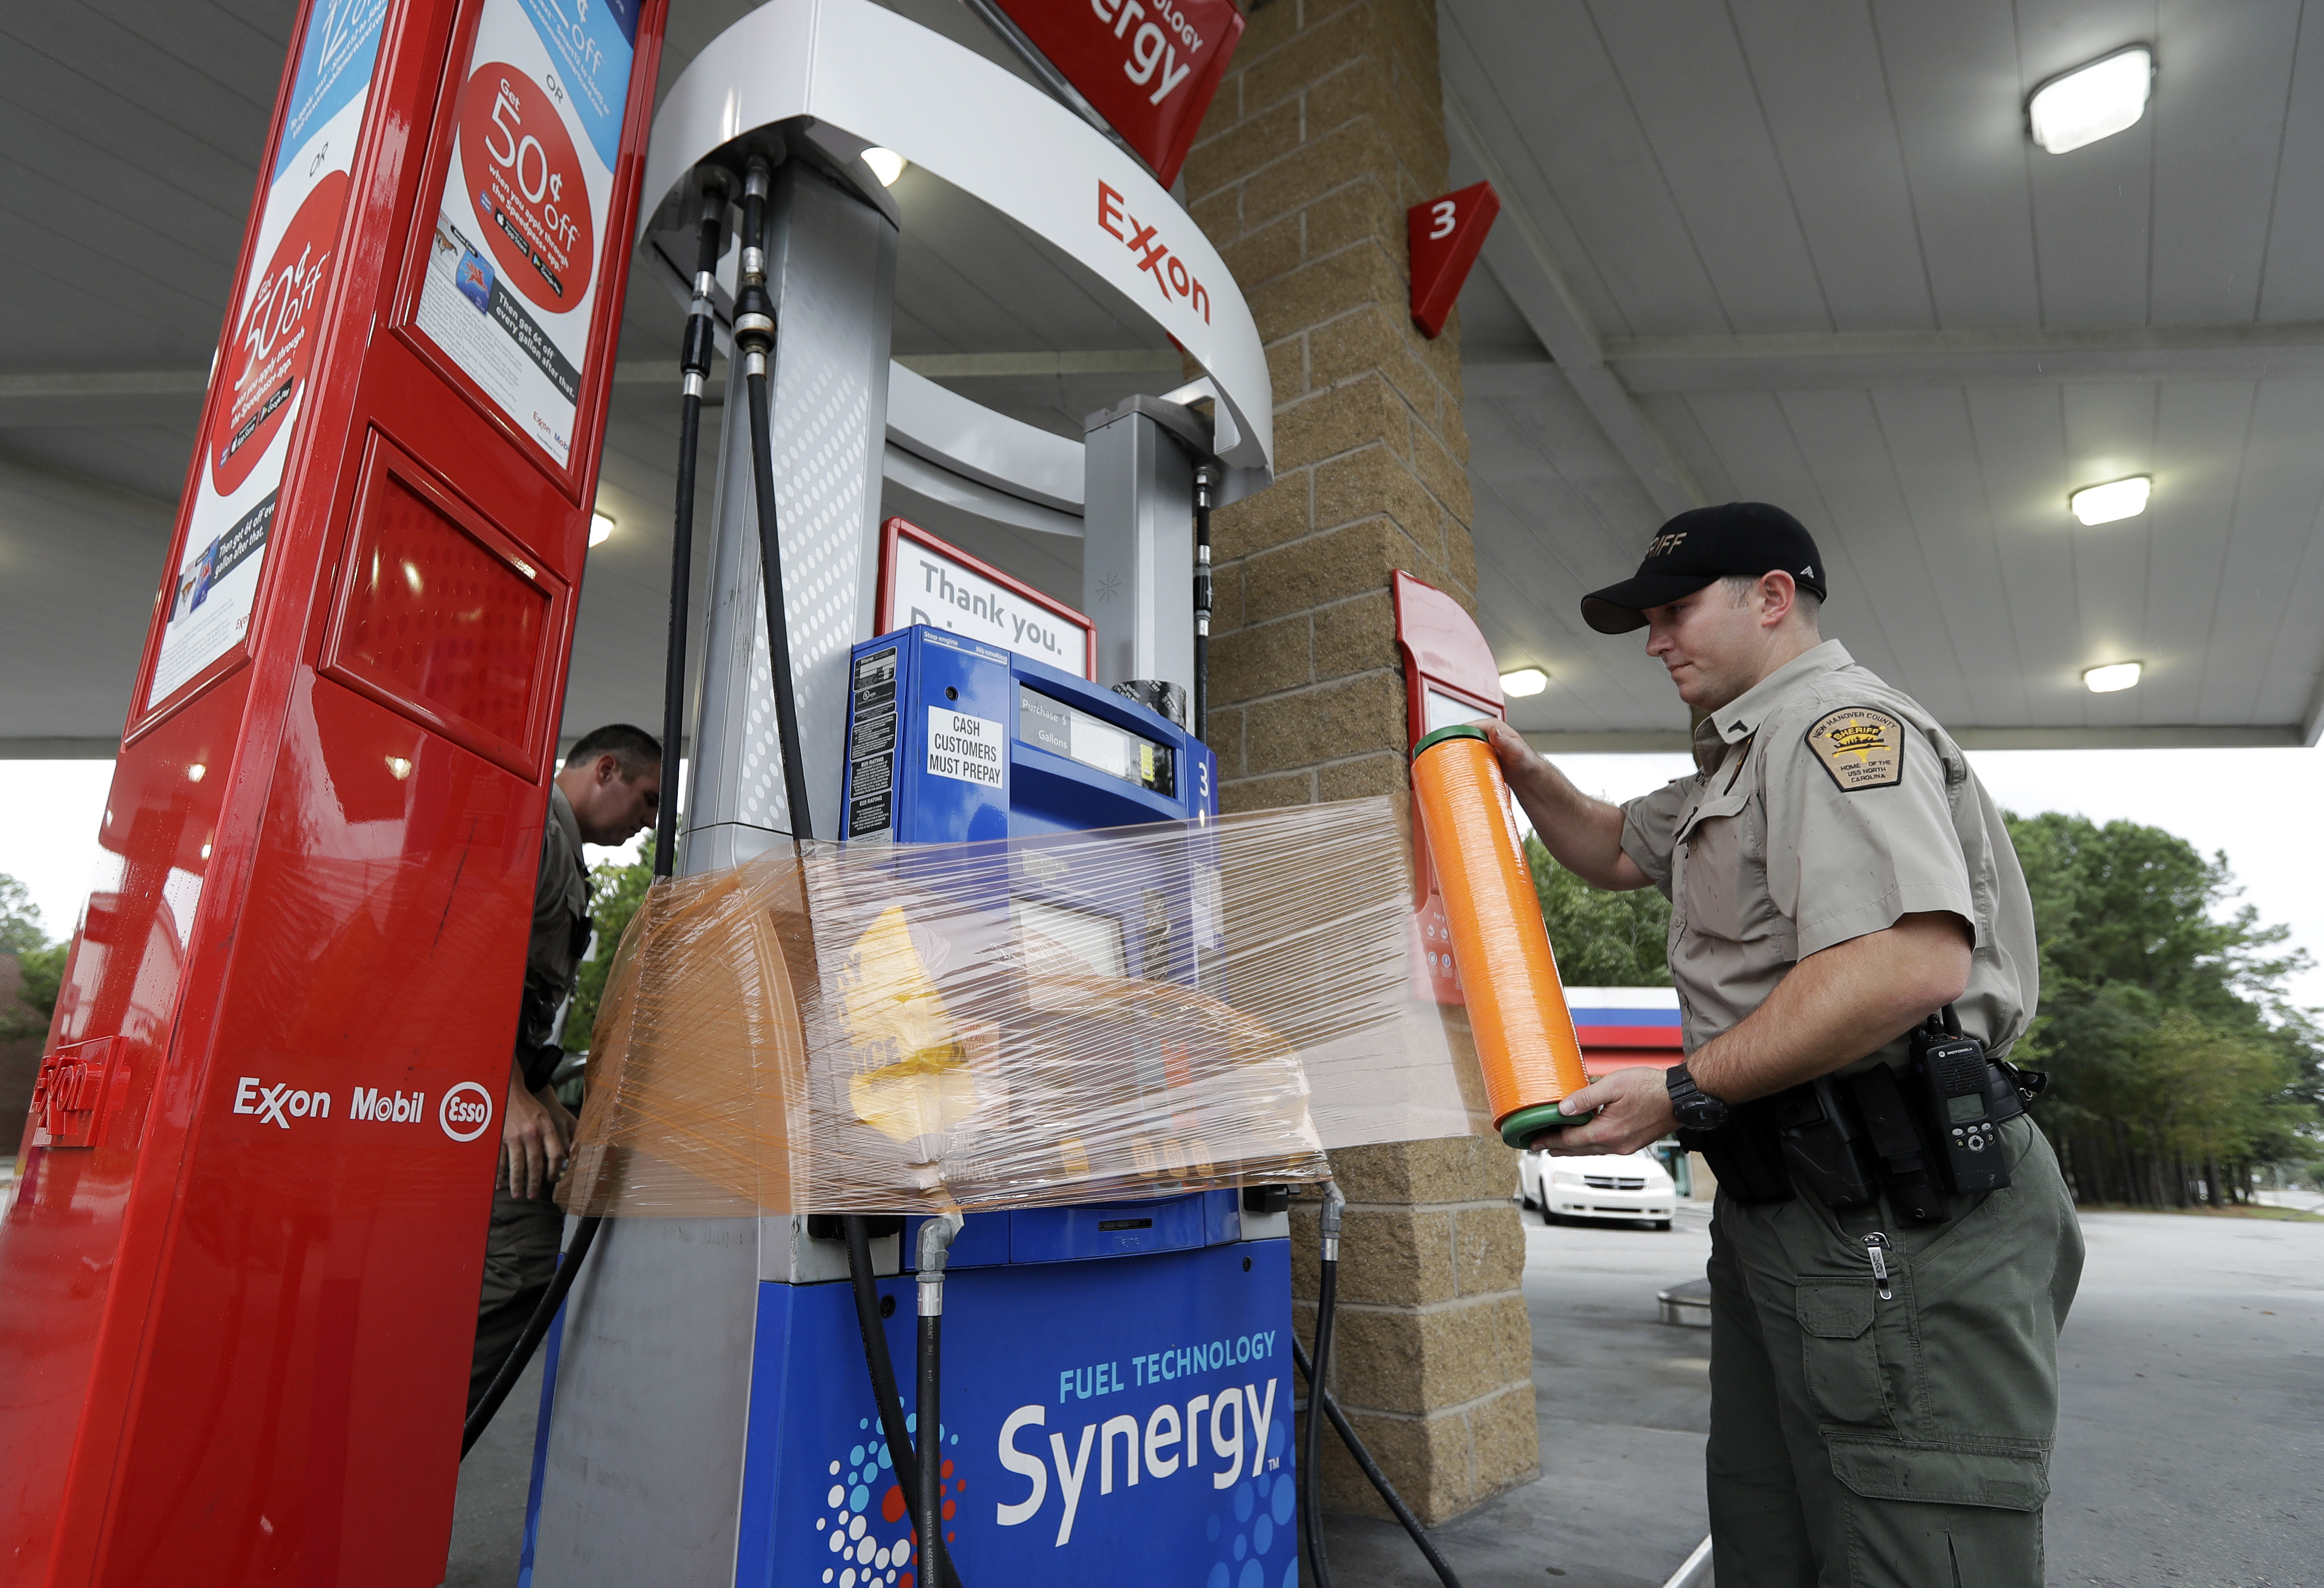 New Hanover Sheriff's Corp. N. Brothers wraps a gas pump for protection in Wilmington, N.C., as Hurricane Florence threatens the coast Thursday, Sept. 13, 2018.